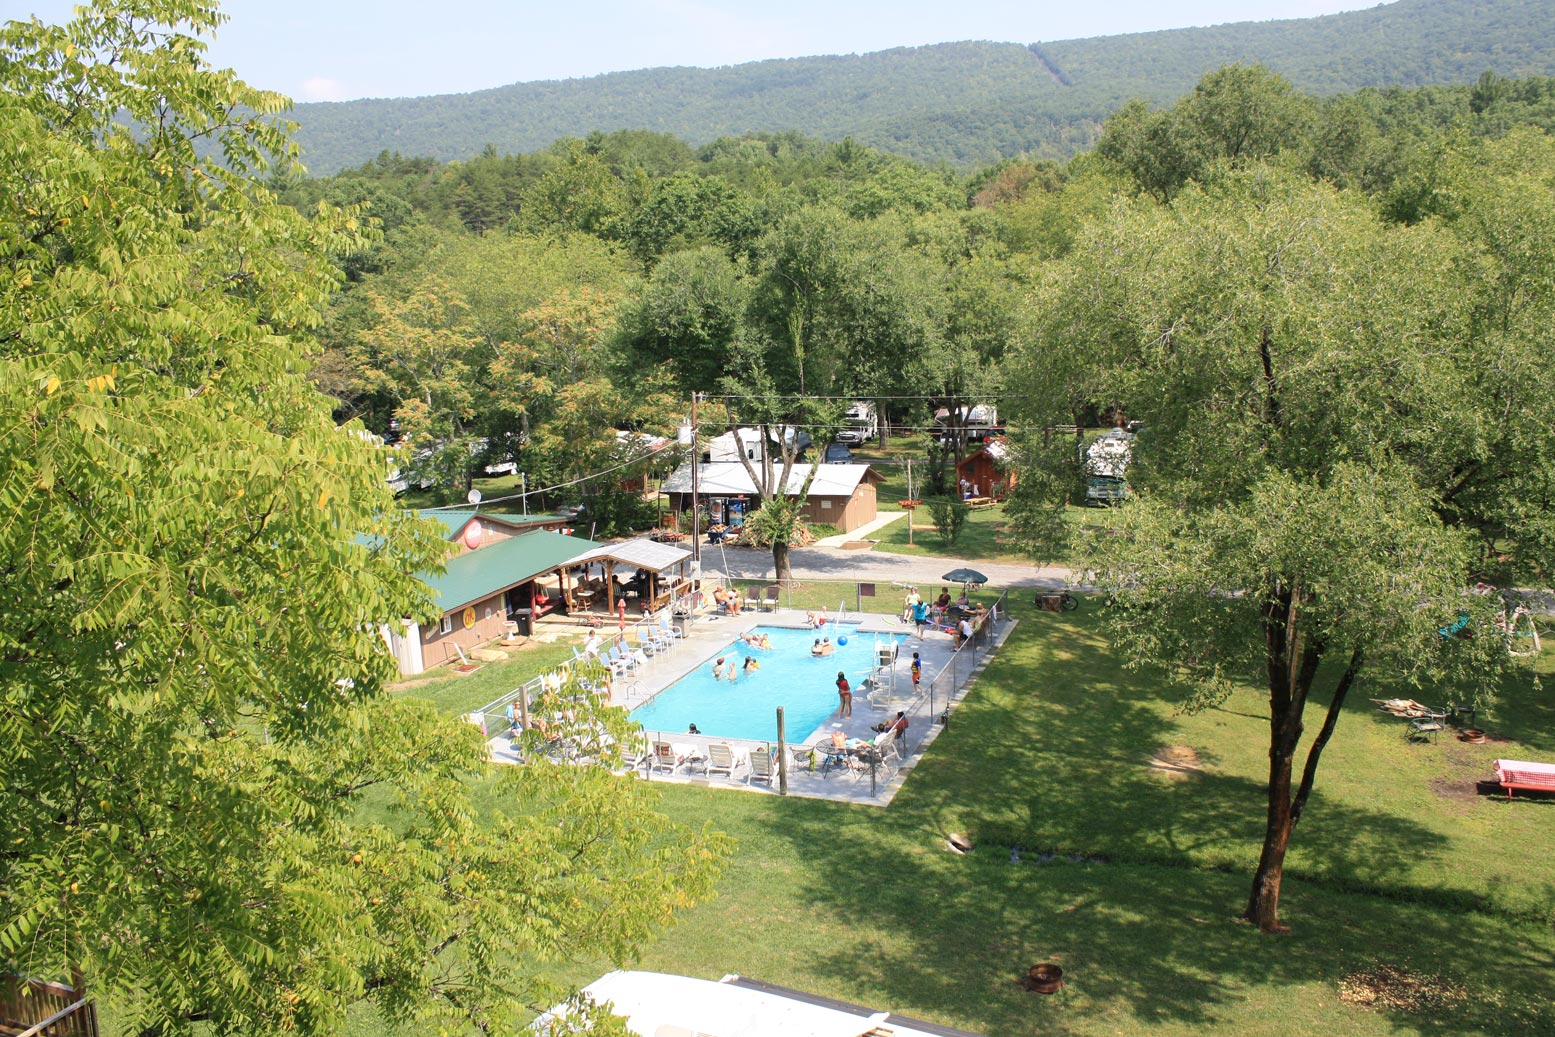 An RV park pool surrounded by lush green forest.